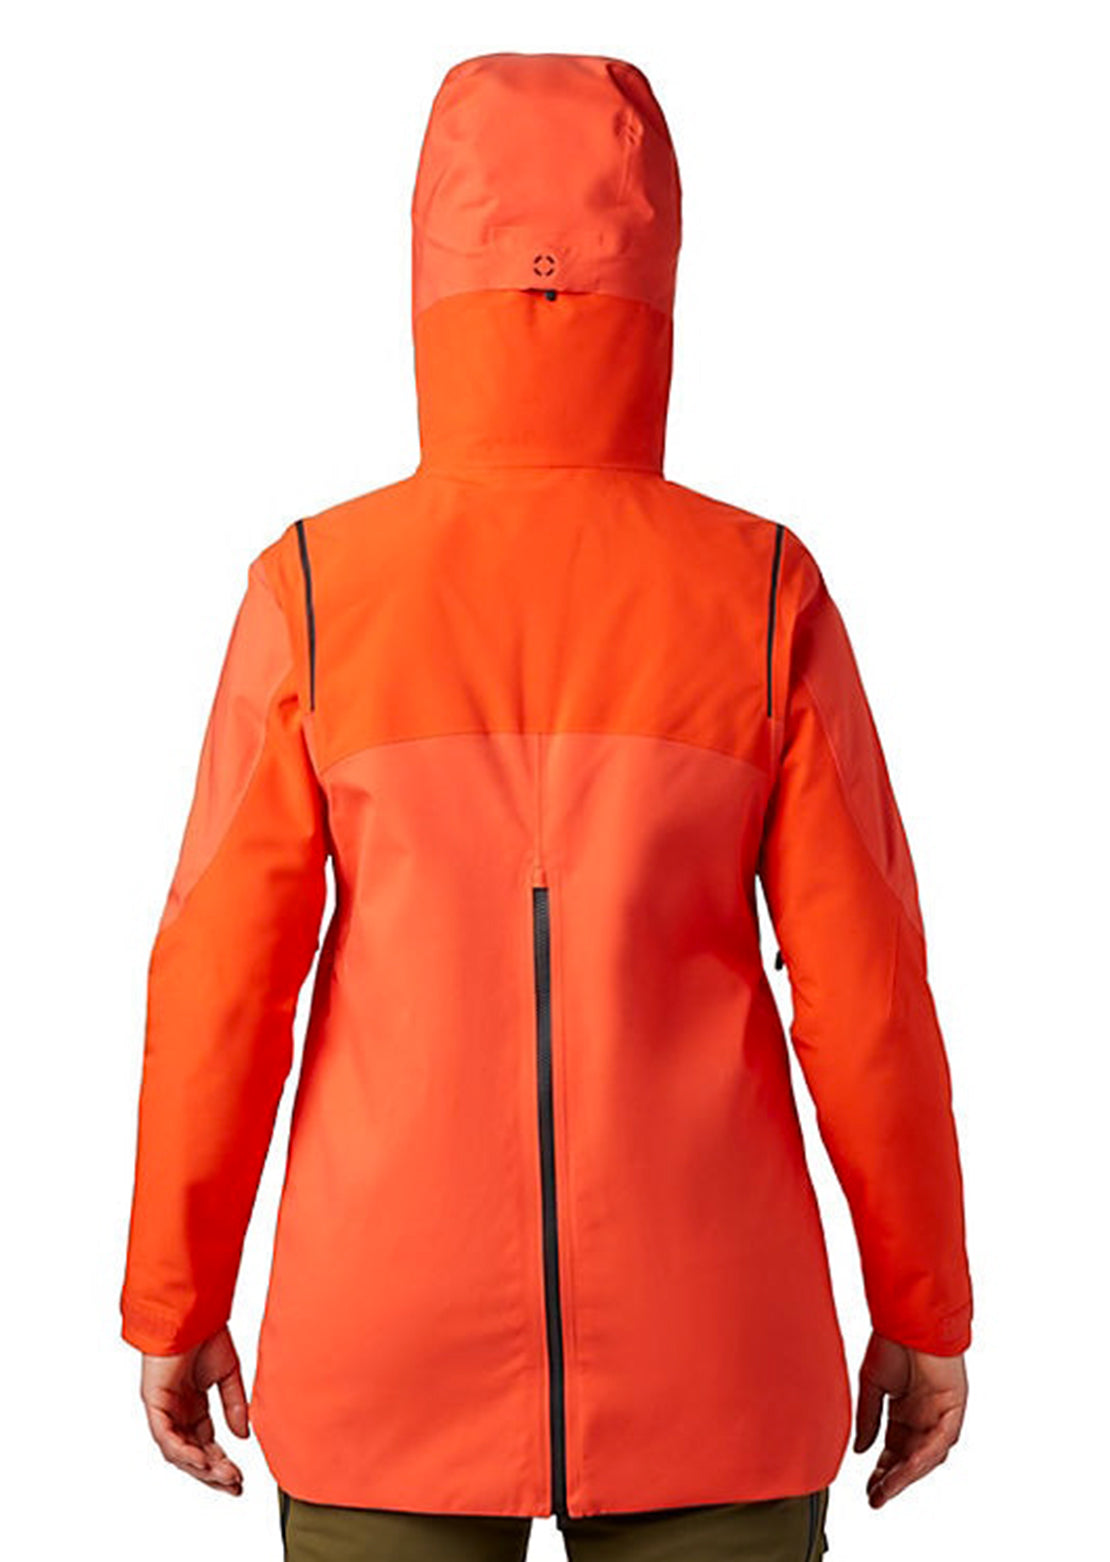 Mountain Hardwear Women's Boudary Line Gore-Tex Insulated Anorak Jacket Sweet Chili